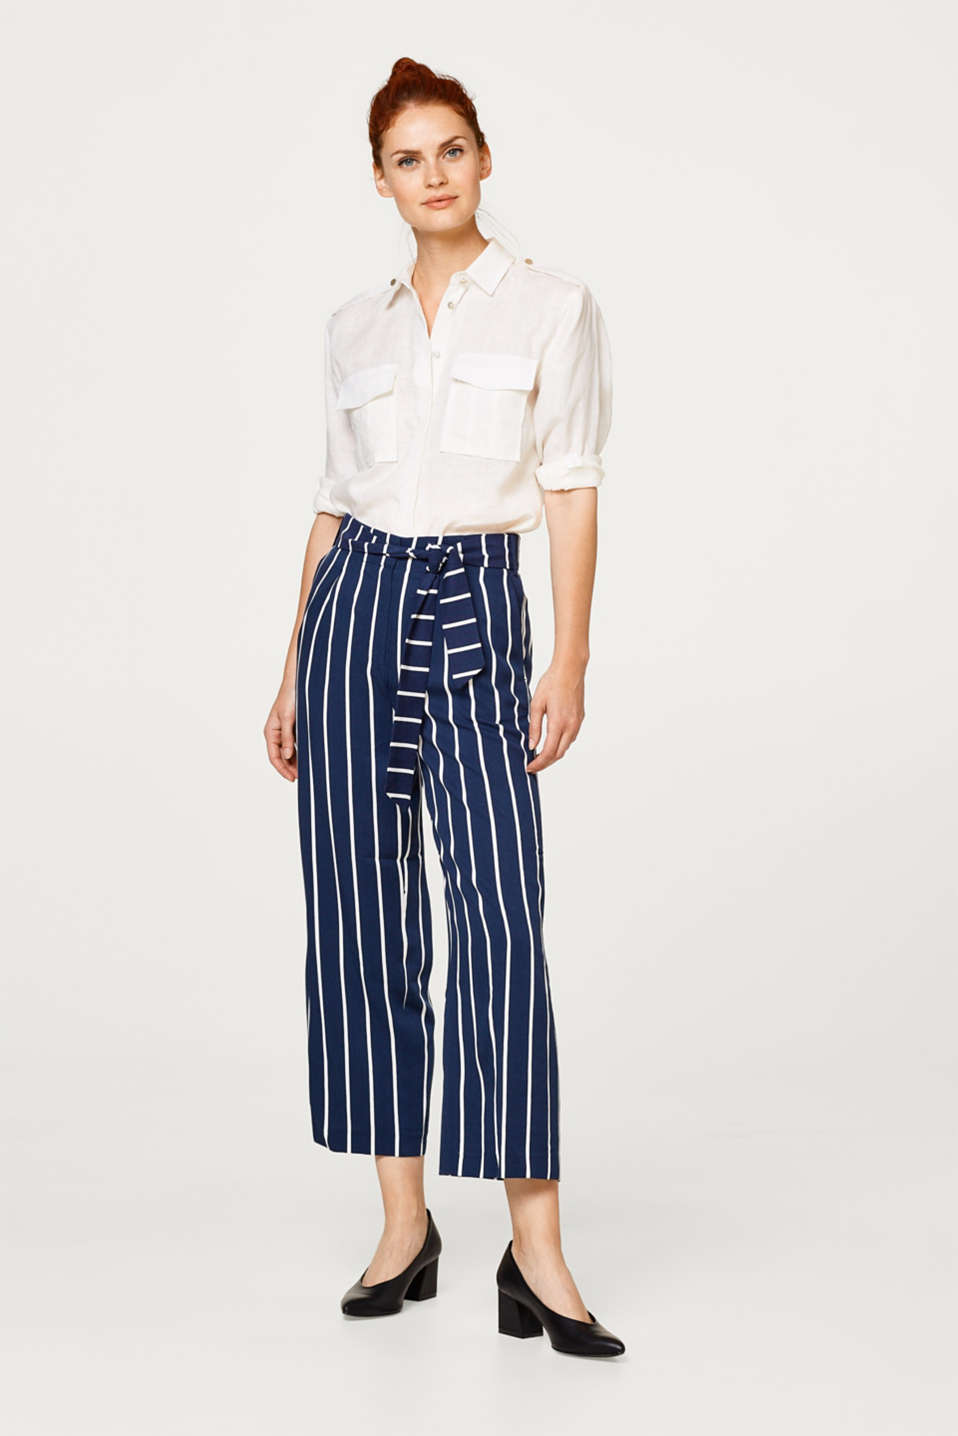 Esprit - Lightweight culottes with distinctive stripes